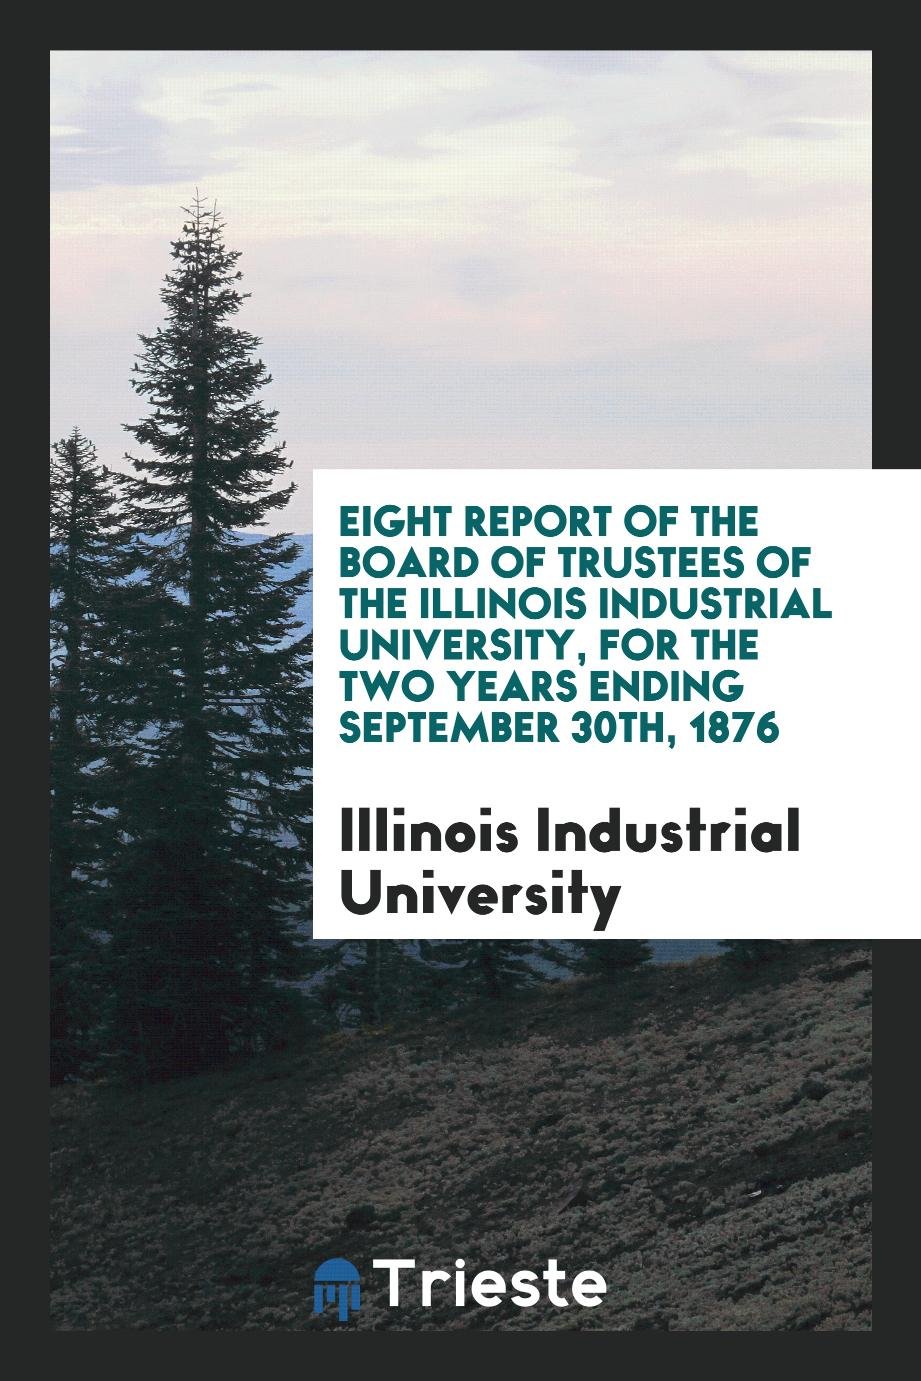 Eight Report of the Board of Trustees of the Illinois Industrial University, for the Two Years Ending September 30th, 1876